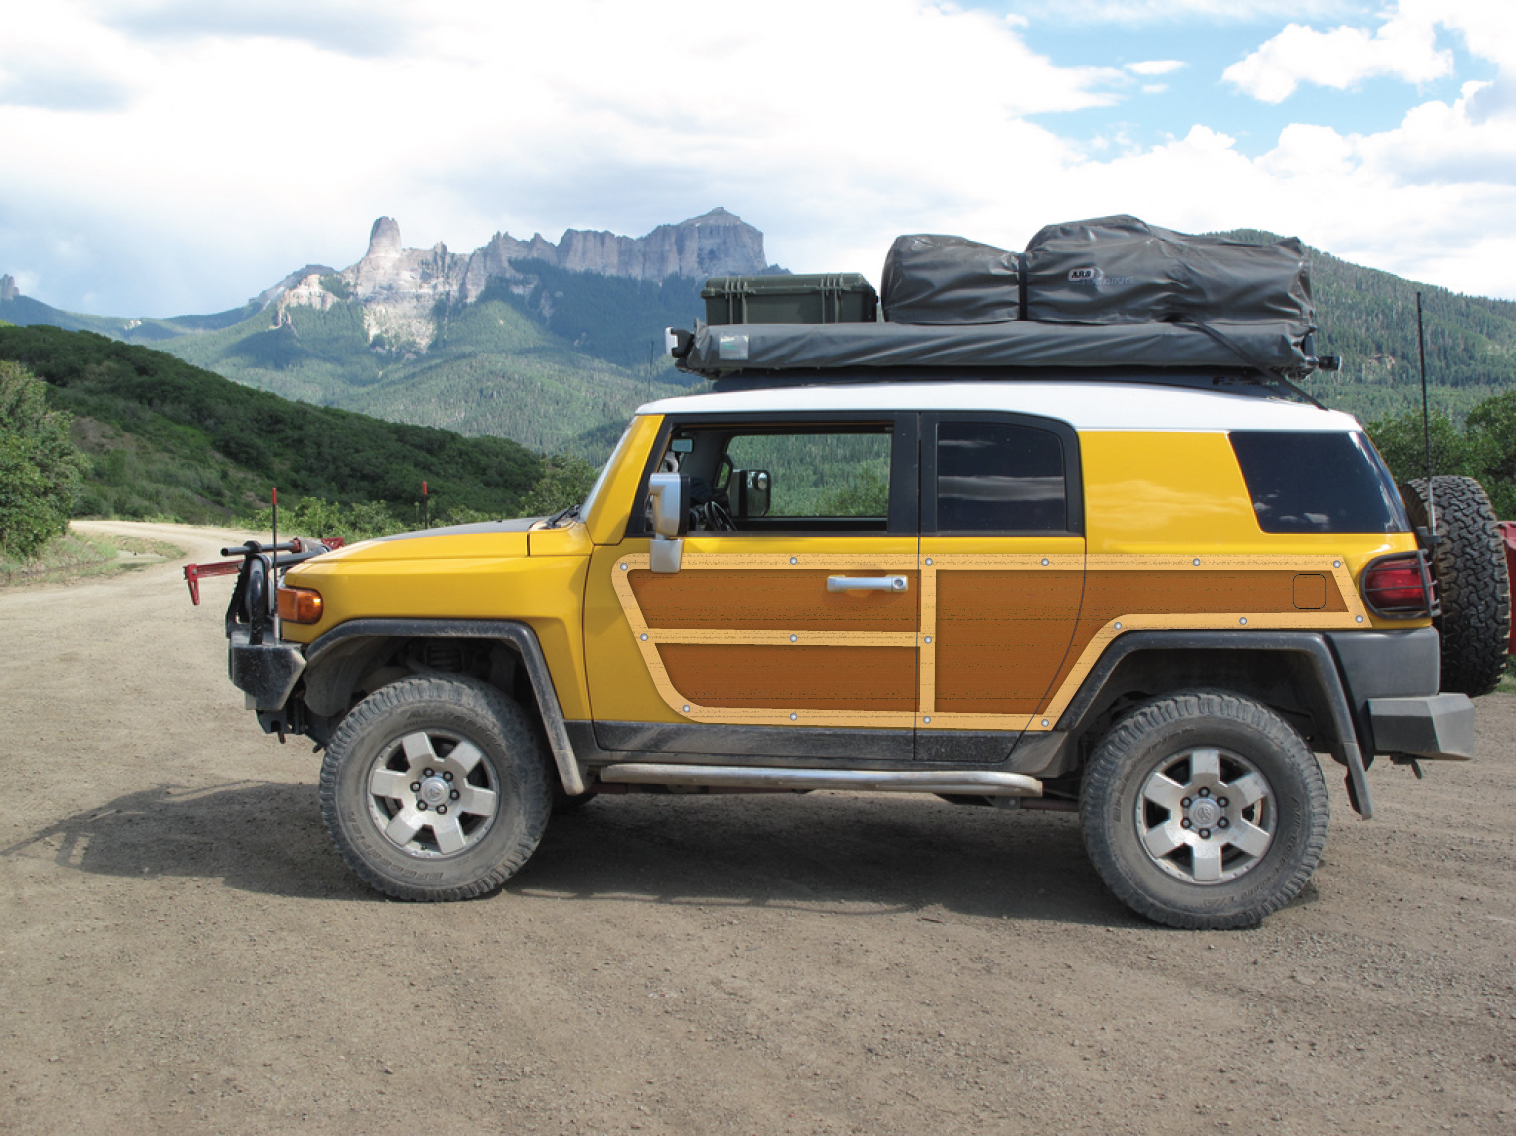 fj cruiser camper conversion html autos post bmw x5 owners manual 2017 bmw x5 owners manual 2017